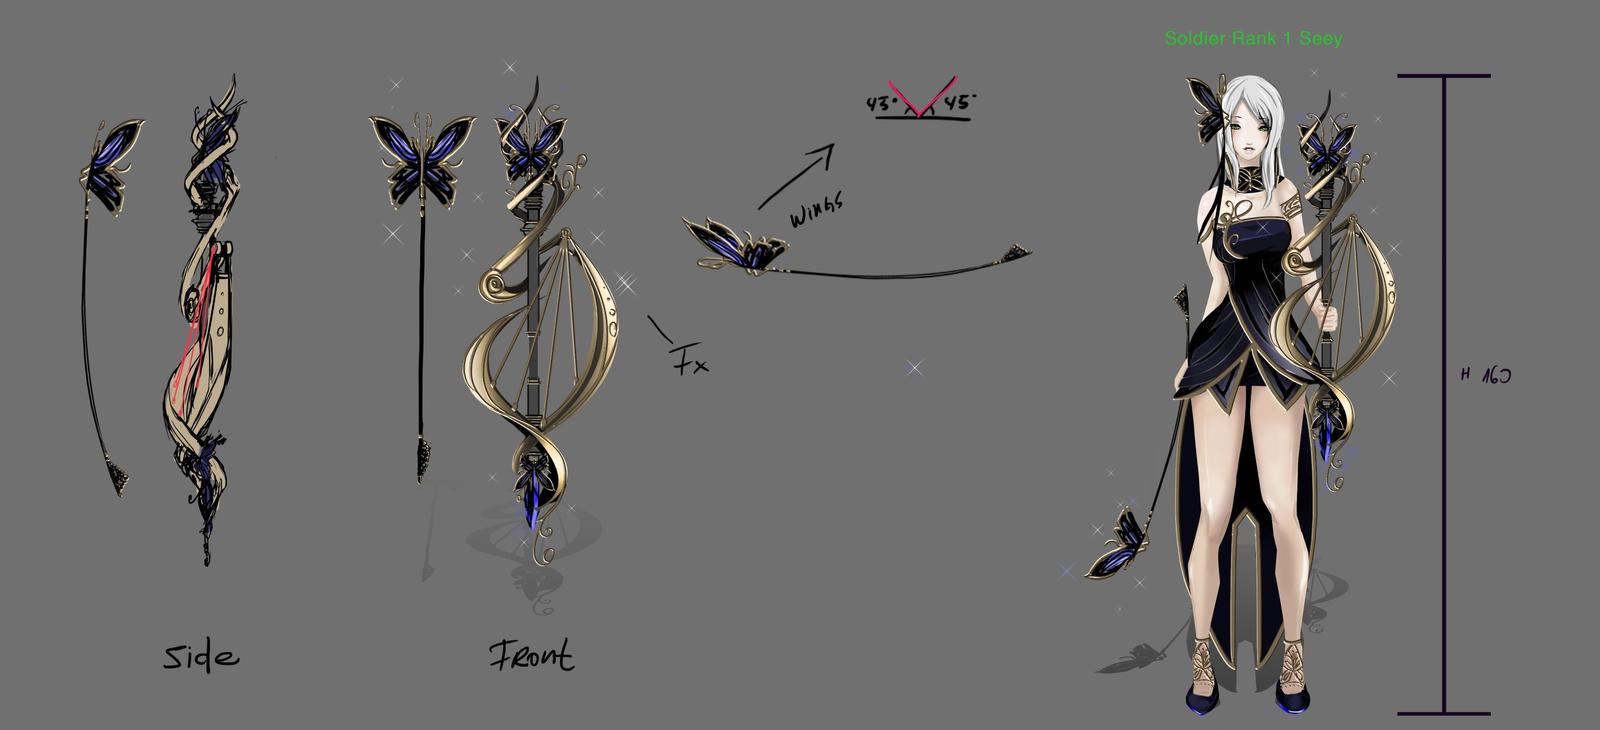 Weapon concept - Bard- Aion 4.0 by hannsamu